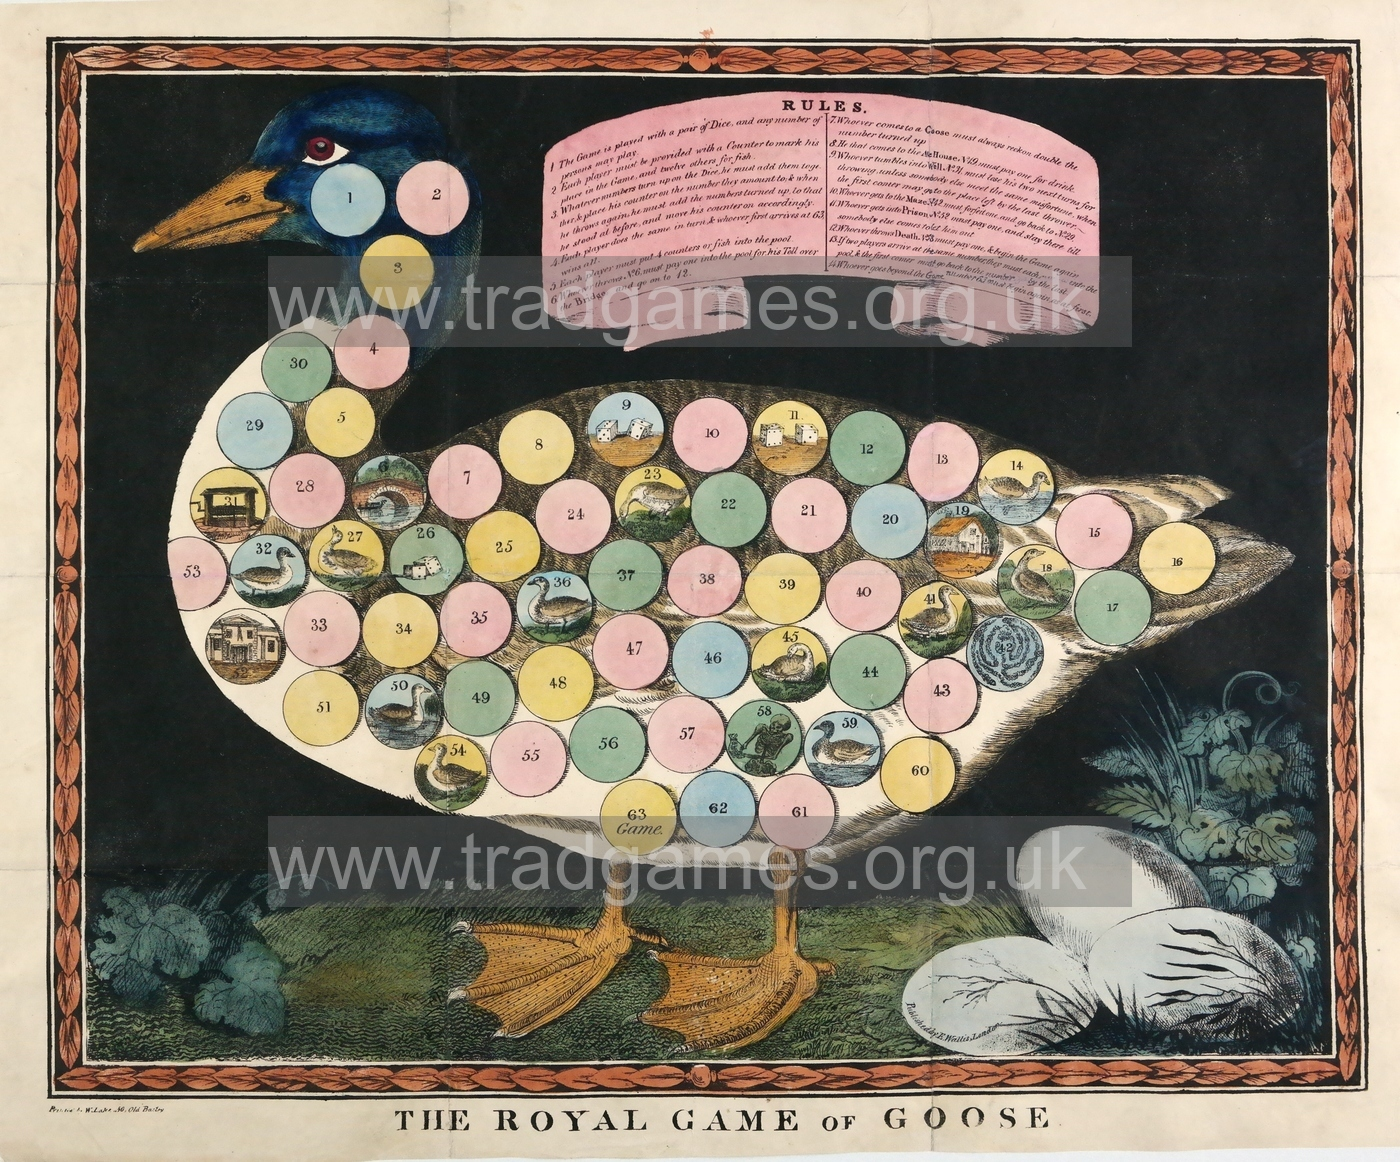 The Royal Game of Goose